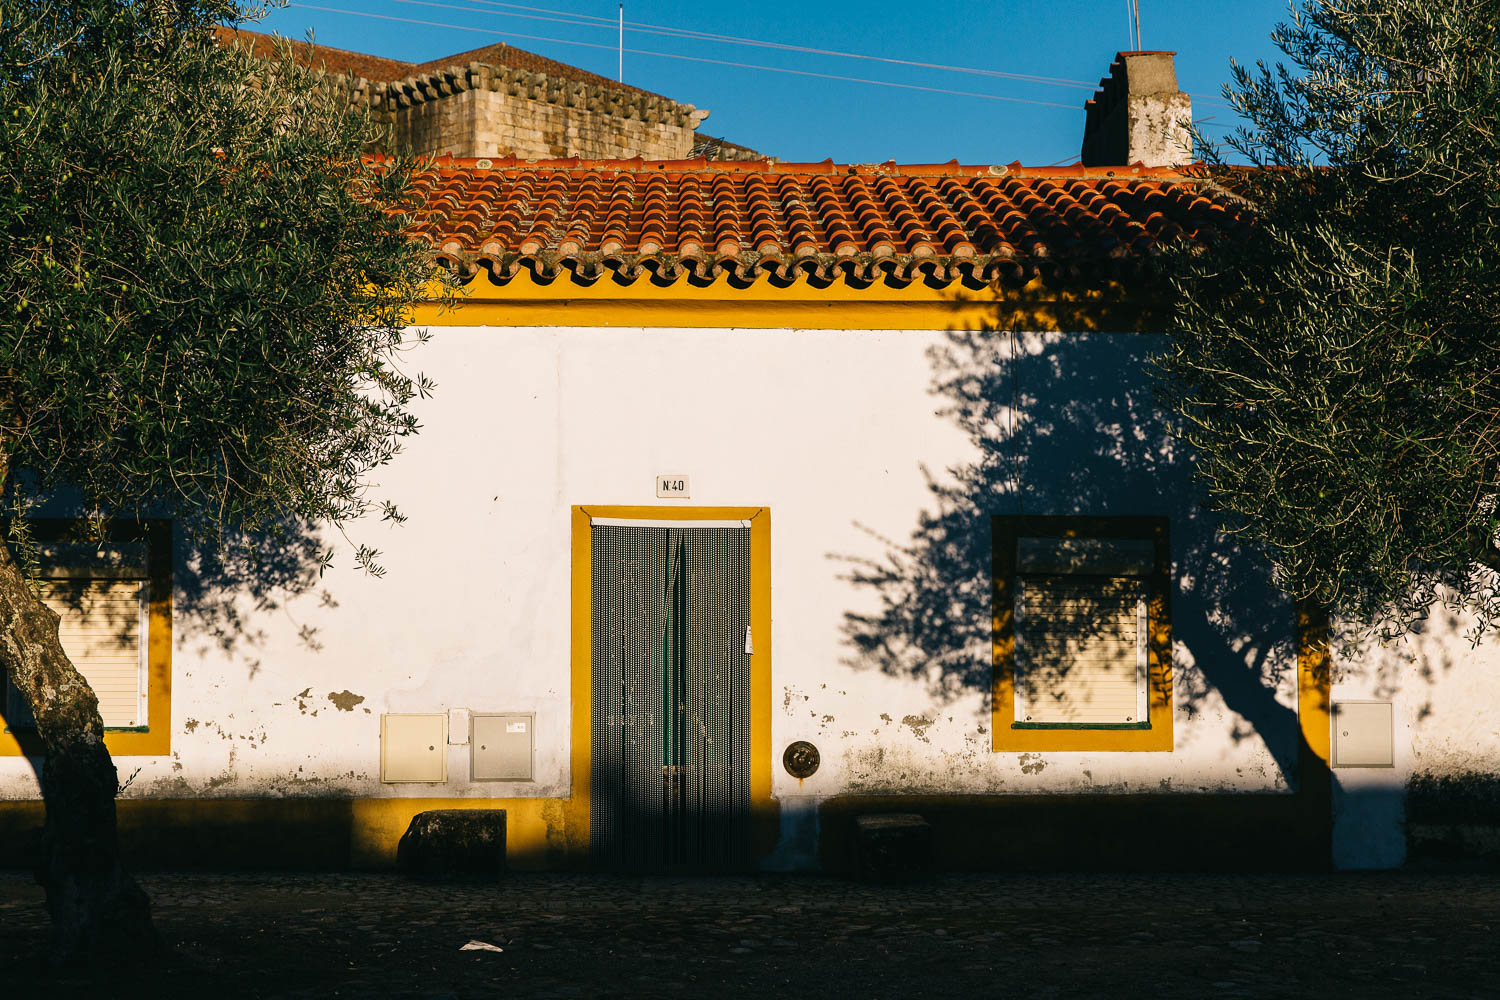 Visit Alentejo Portugal fall 2015 - On a hazy morning